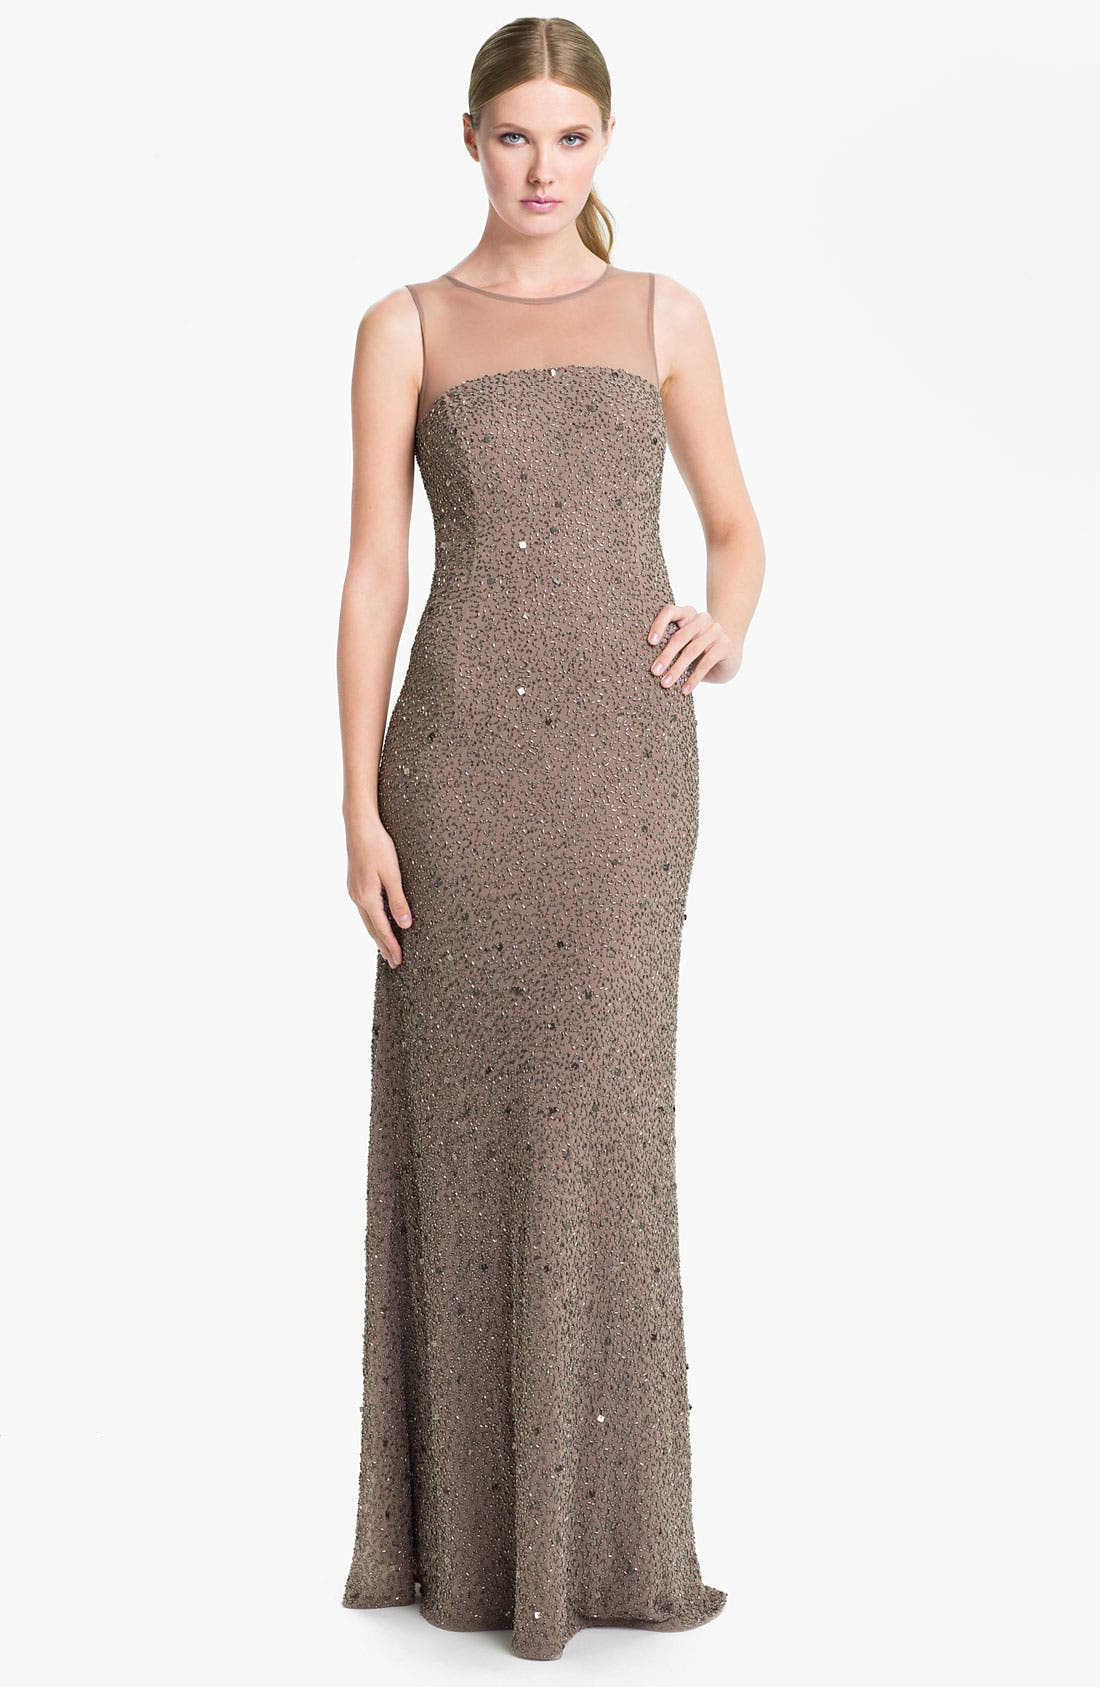 Alternate Image 1 Selected - Adrianna Papell Illusion Yoke Embellished Chiffon Gown